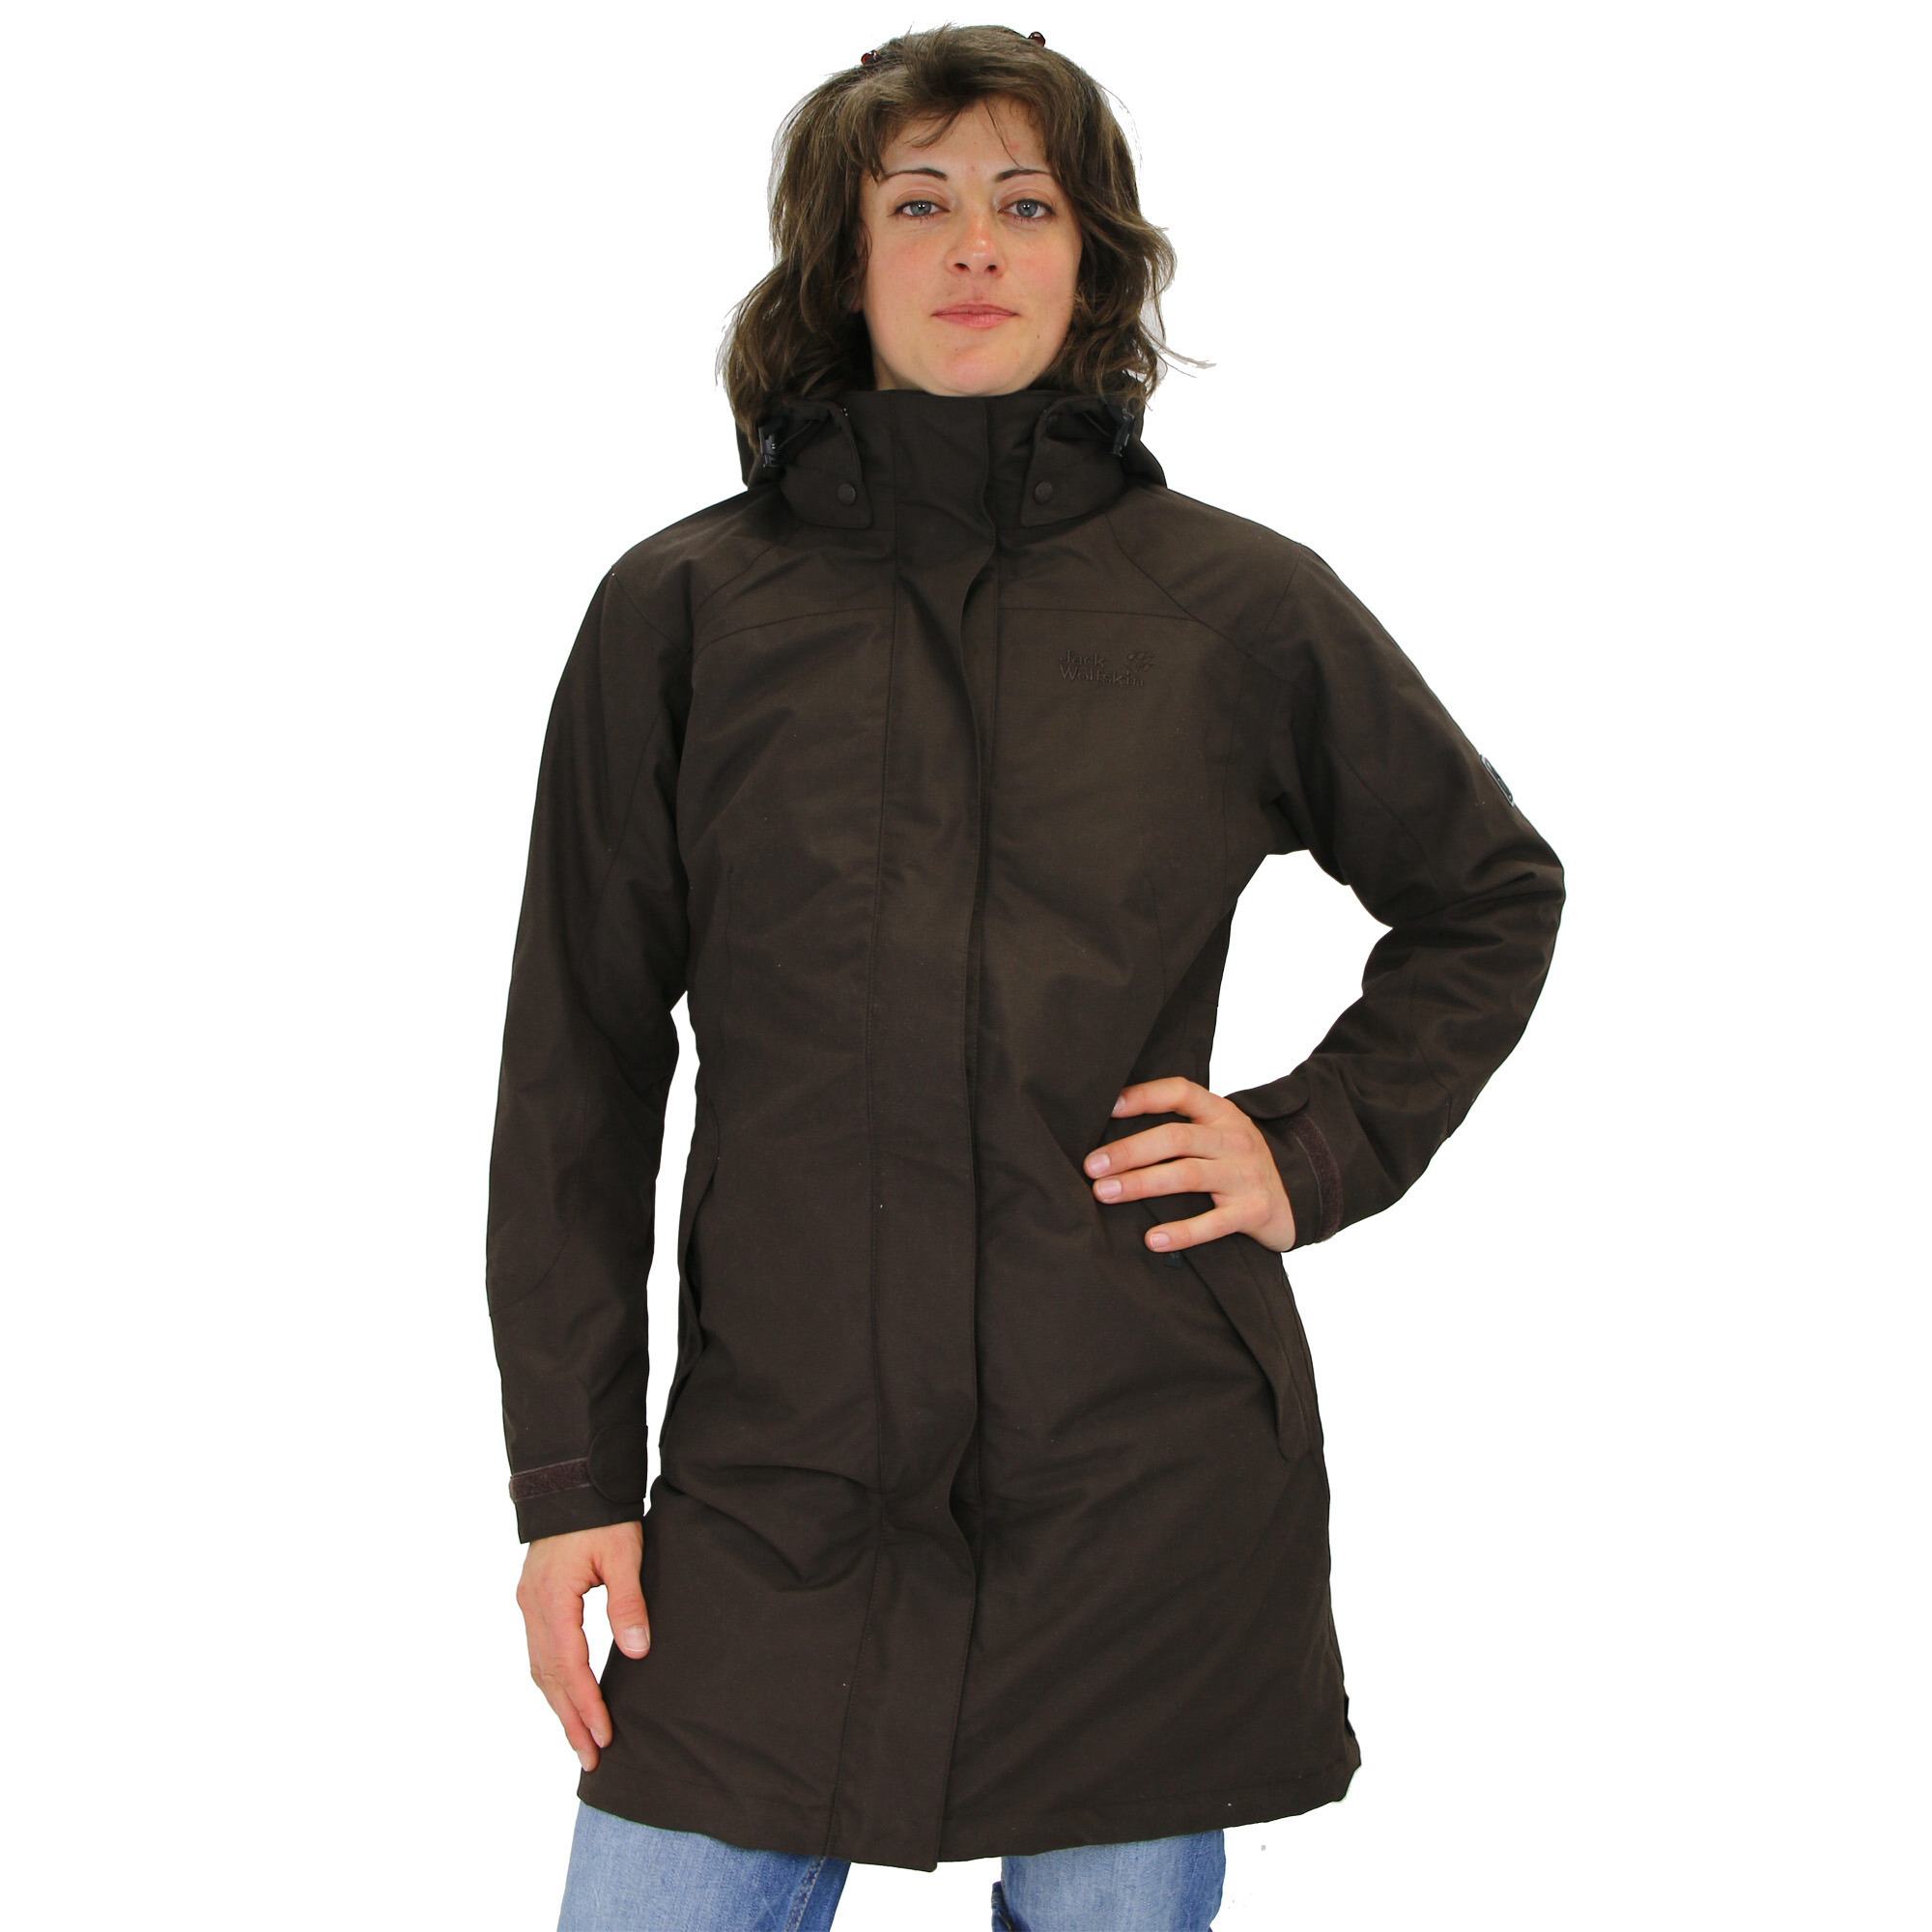 jack wolfskin ottawa parka mantel wintermantel winterjacke jacke winter damen ebay. Black Bedroom Furniture Sets. Home Design Ideas